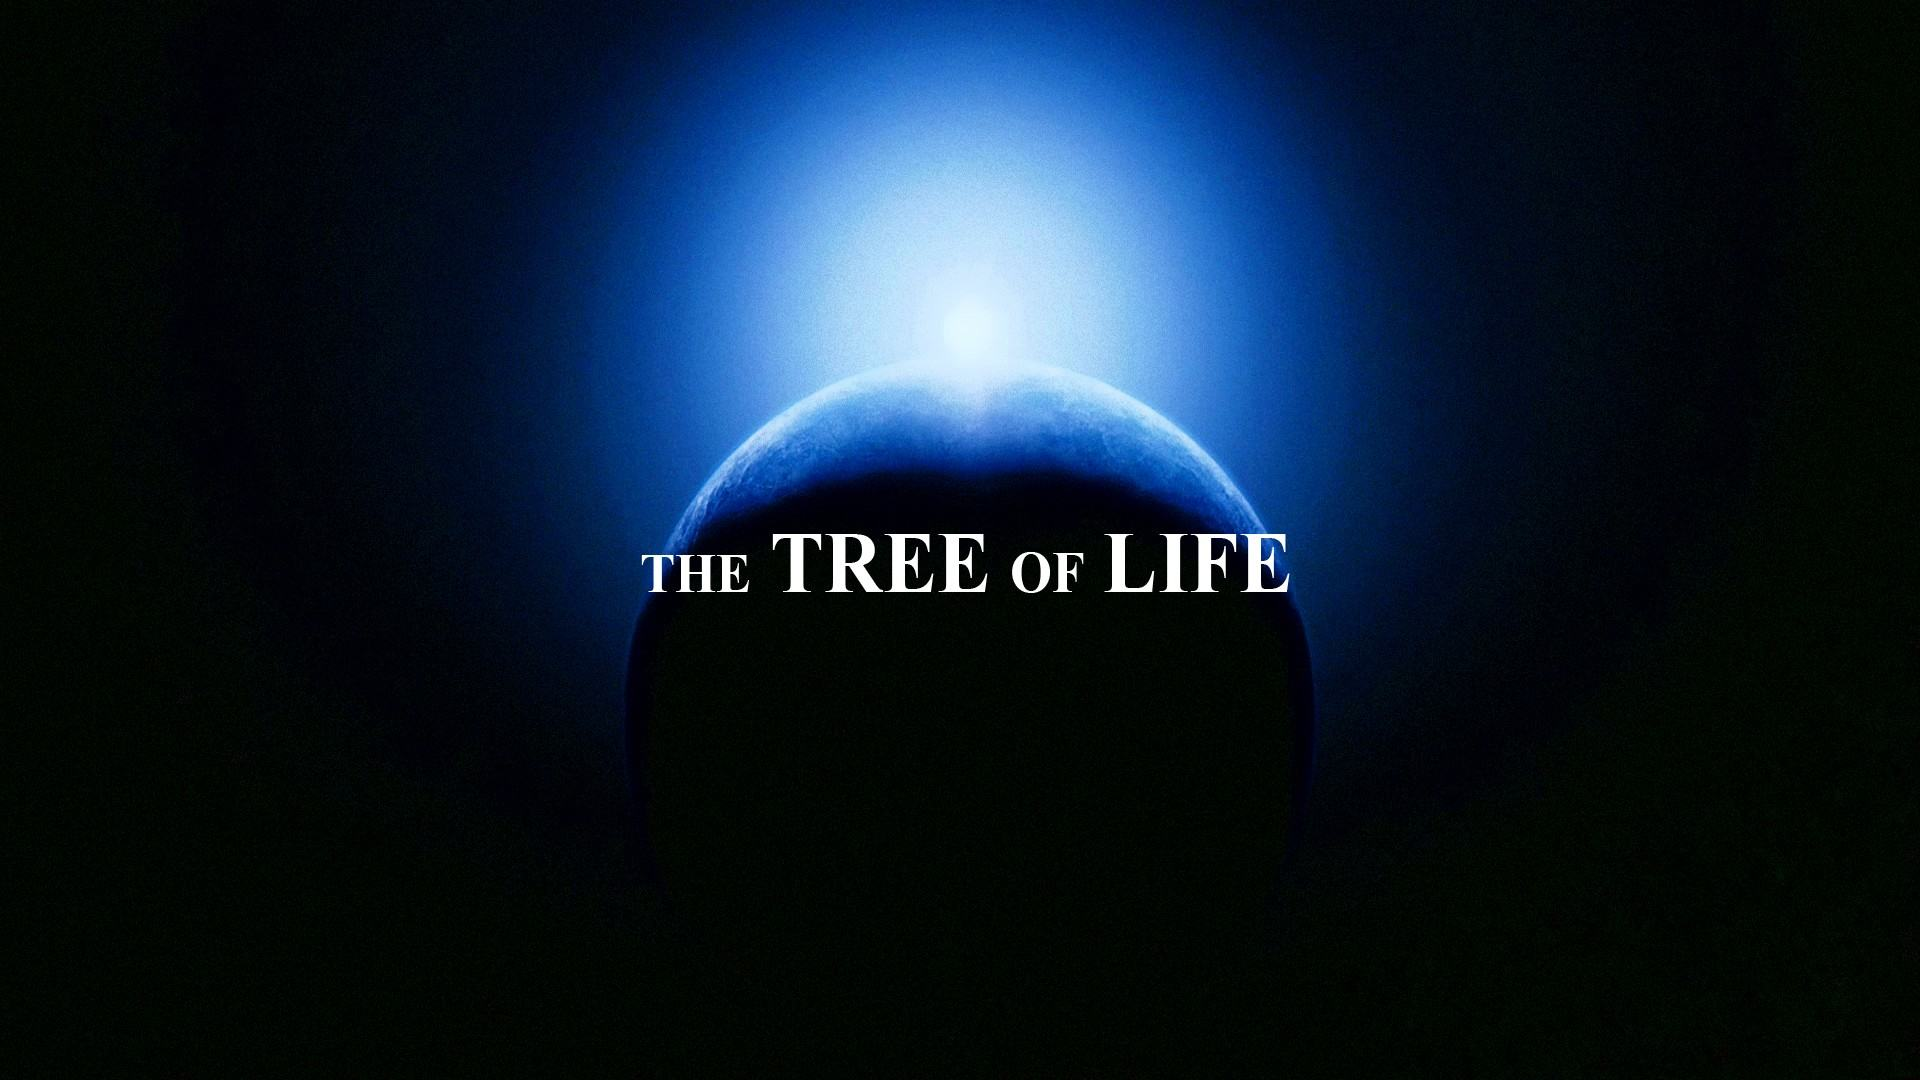 ���� �� ������ The Tree of Life 1920x1080